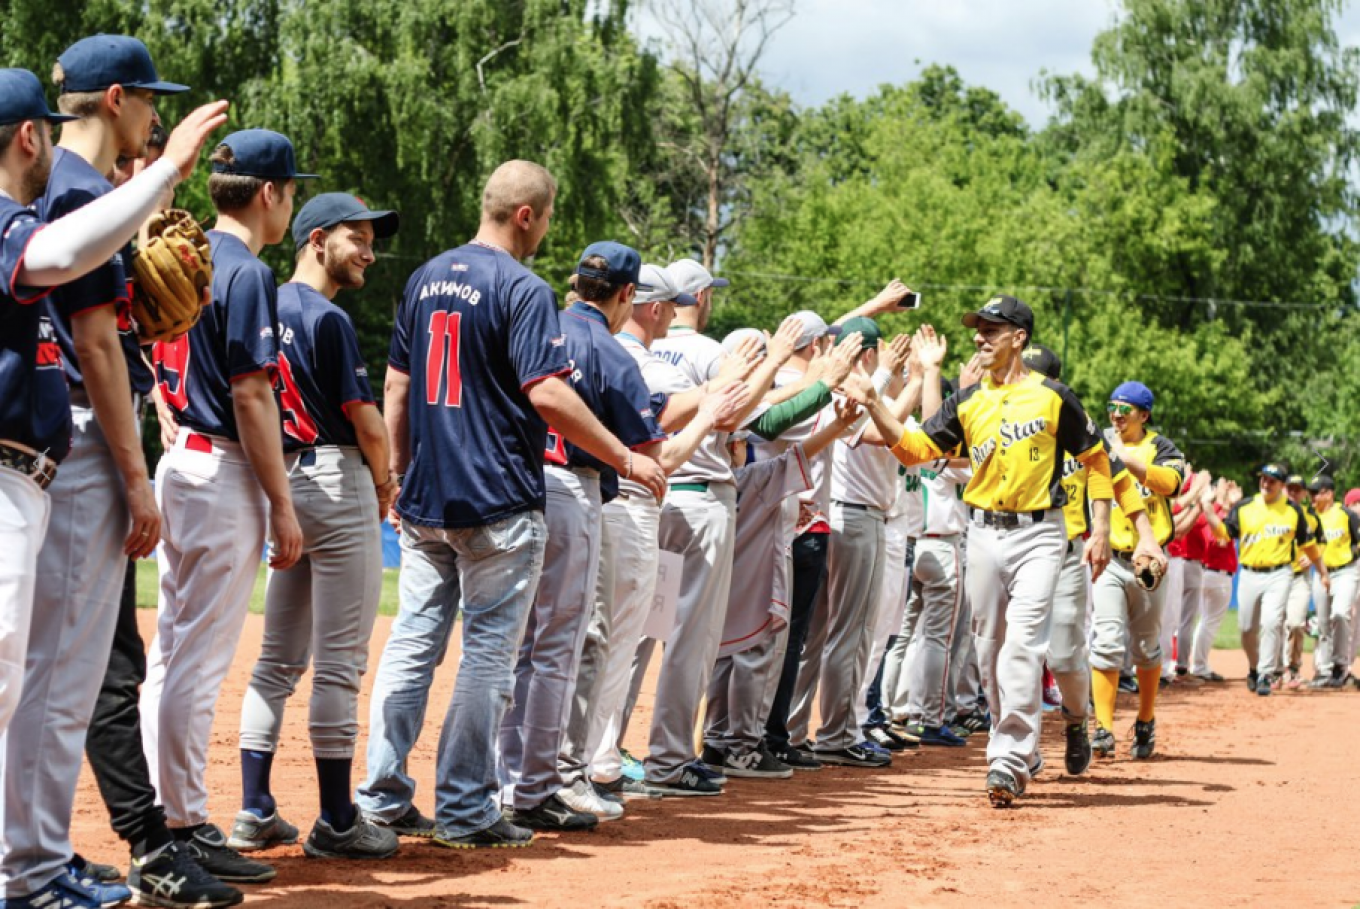 Baseball is trying to carve out a niche in Russia.  Natalya Gutovskaya